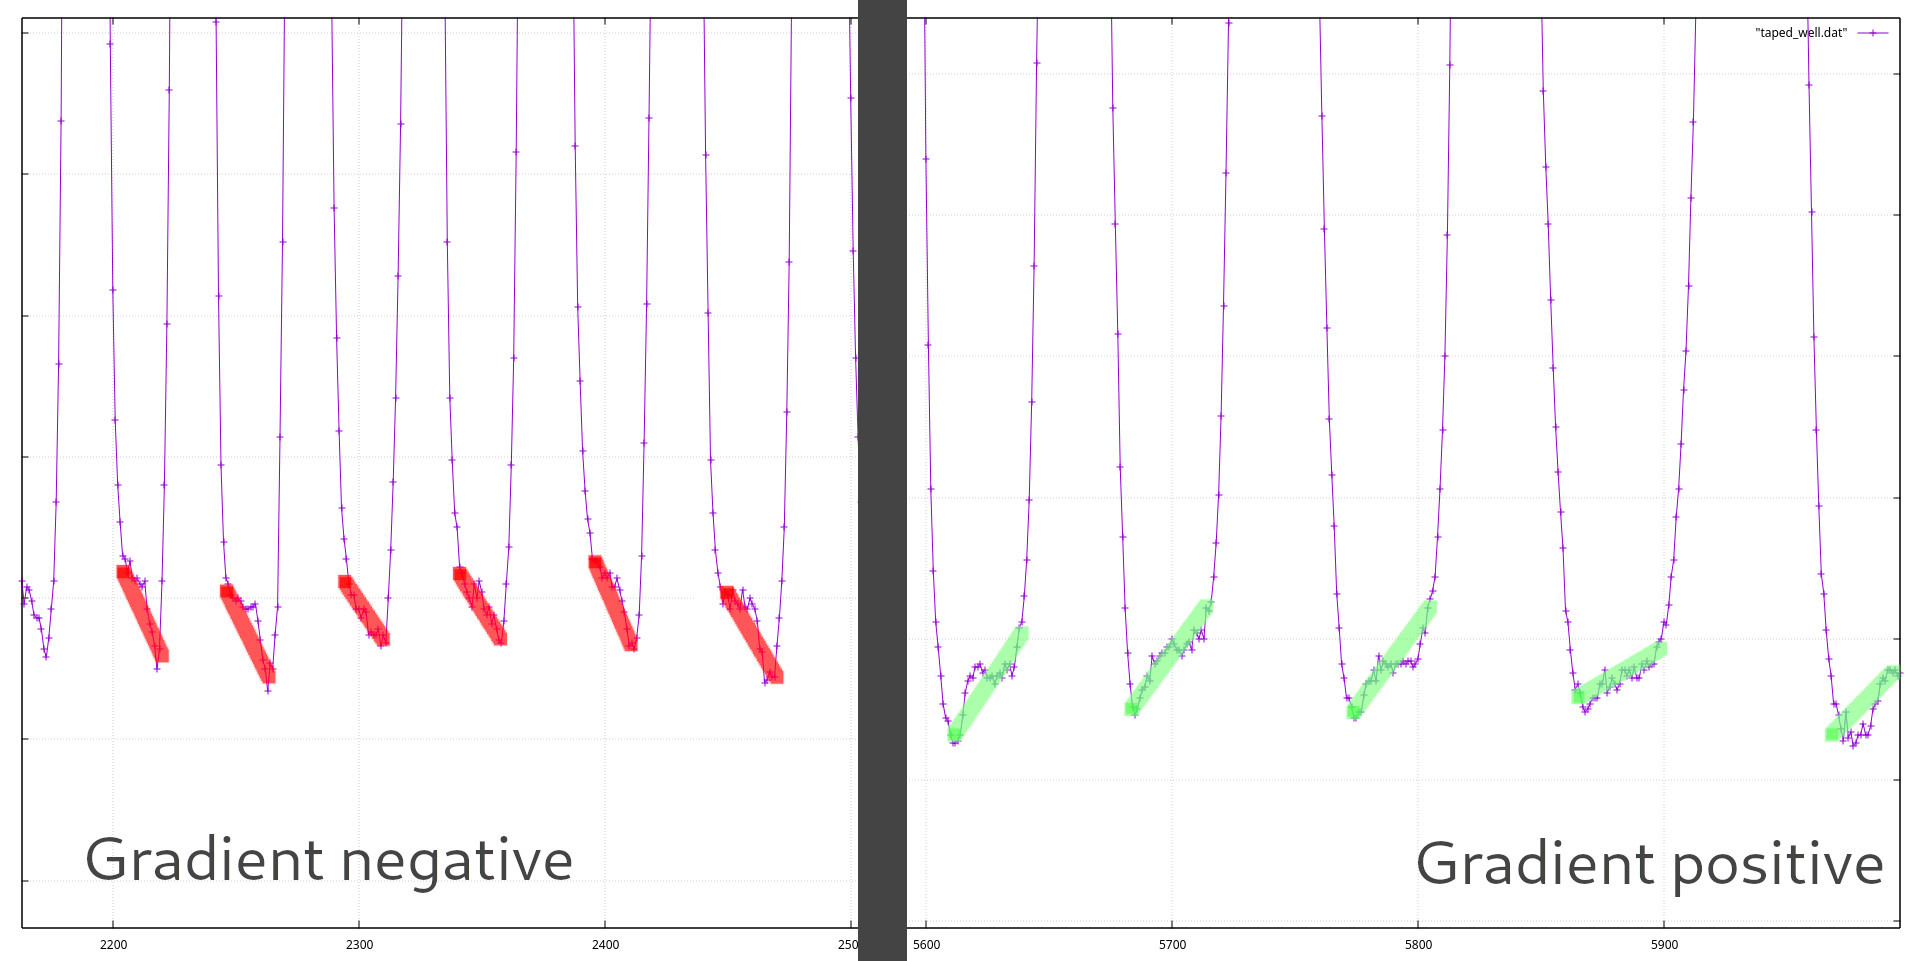 Radiometer proximity data with gradient lines drawn